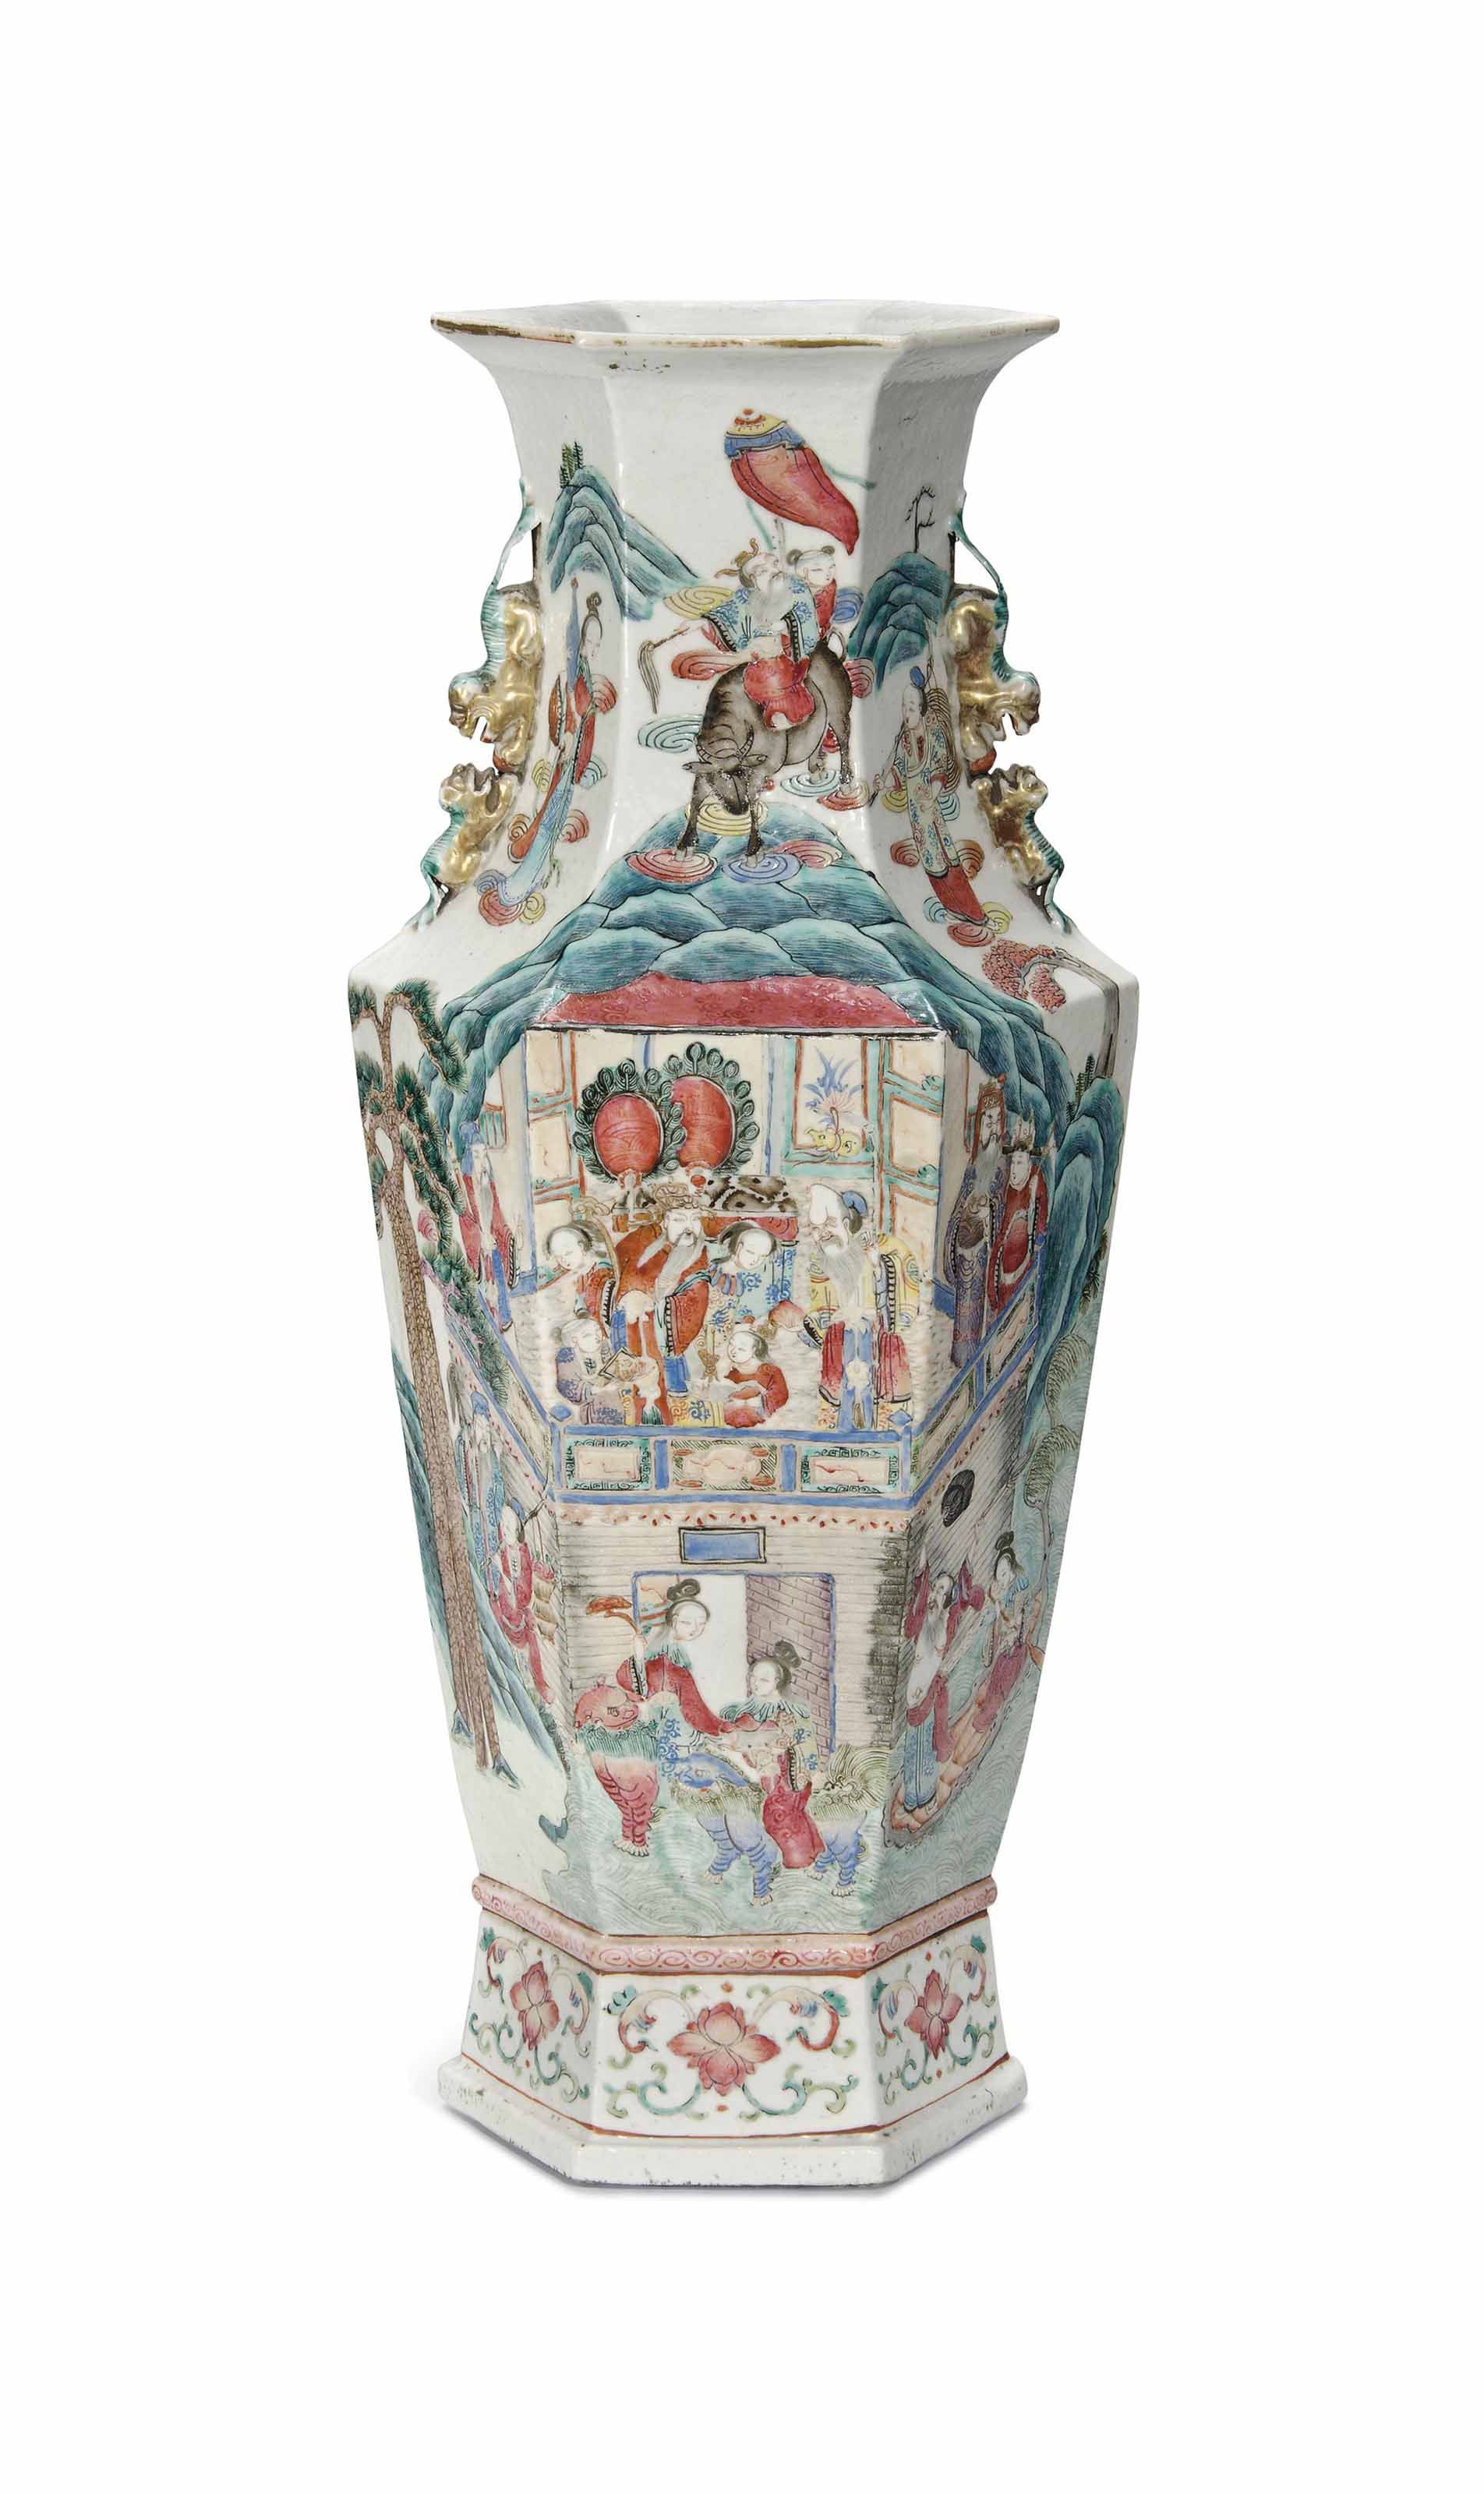 A CHINESE FAMILLE ROSE HEXAGONAL VASE